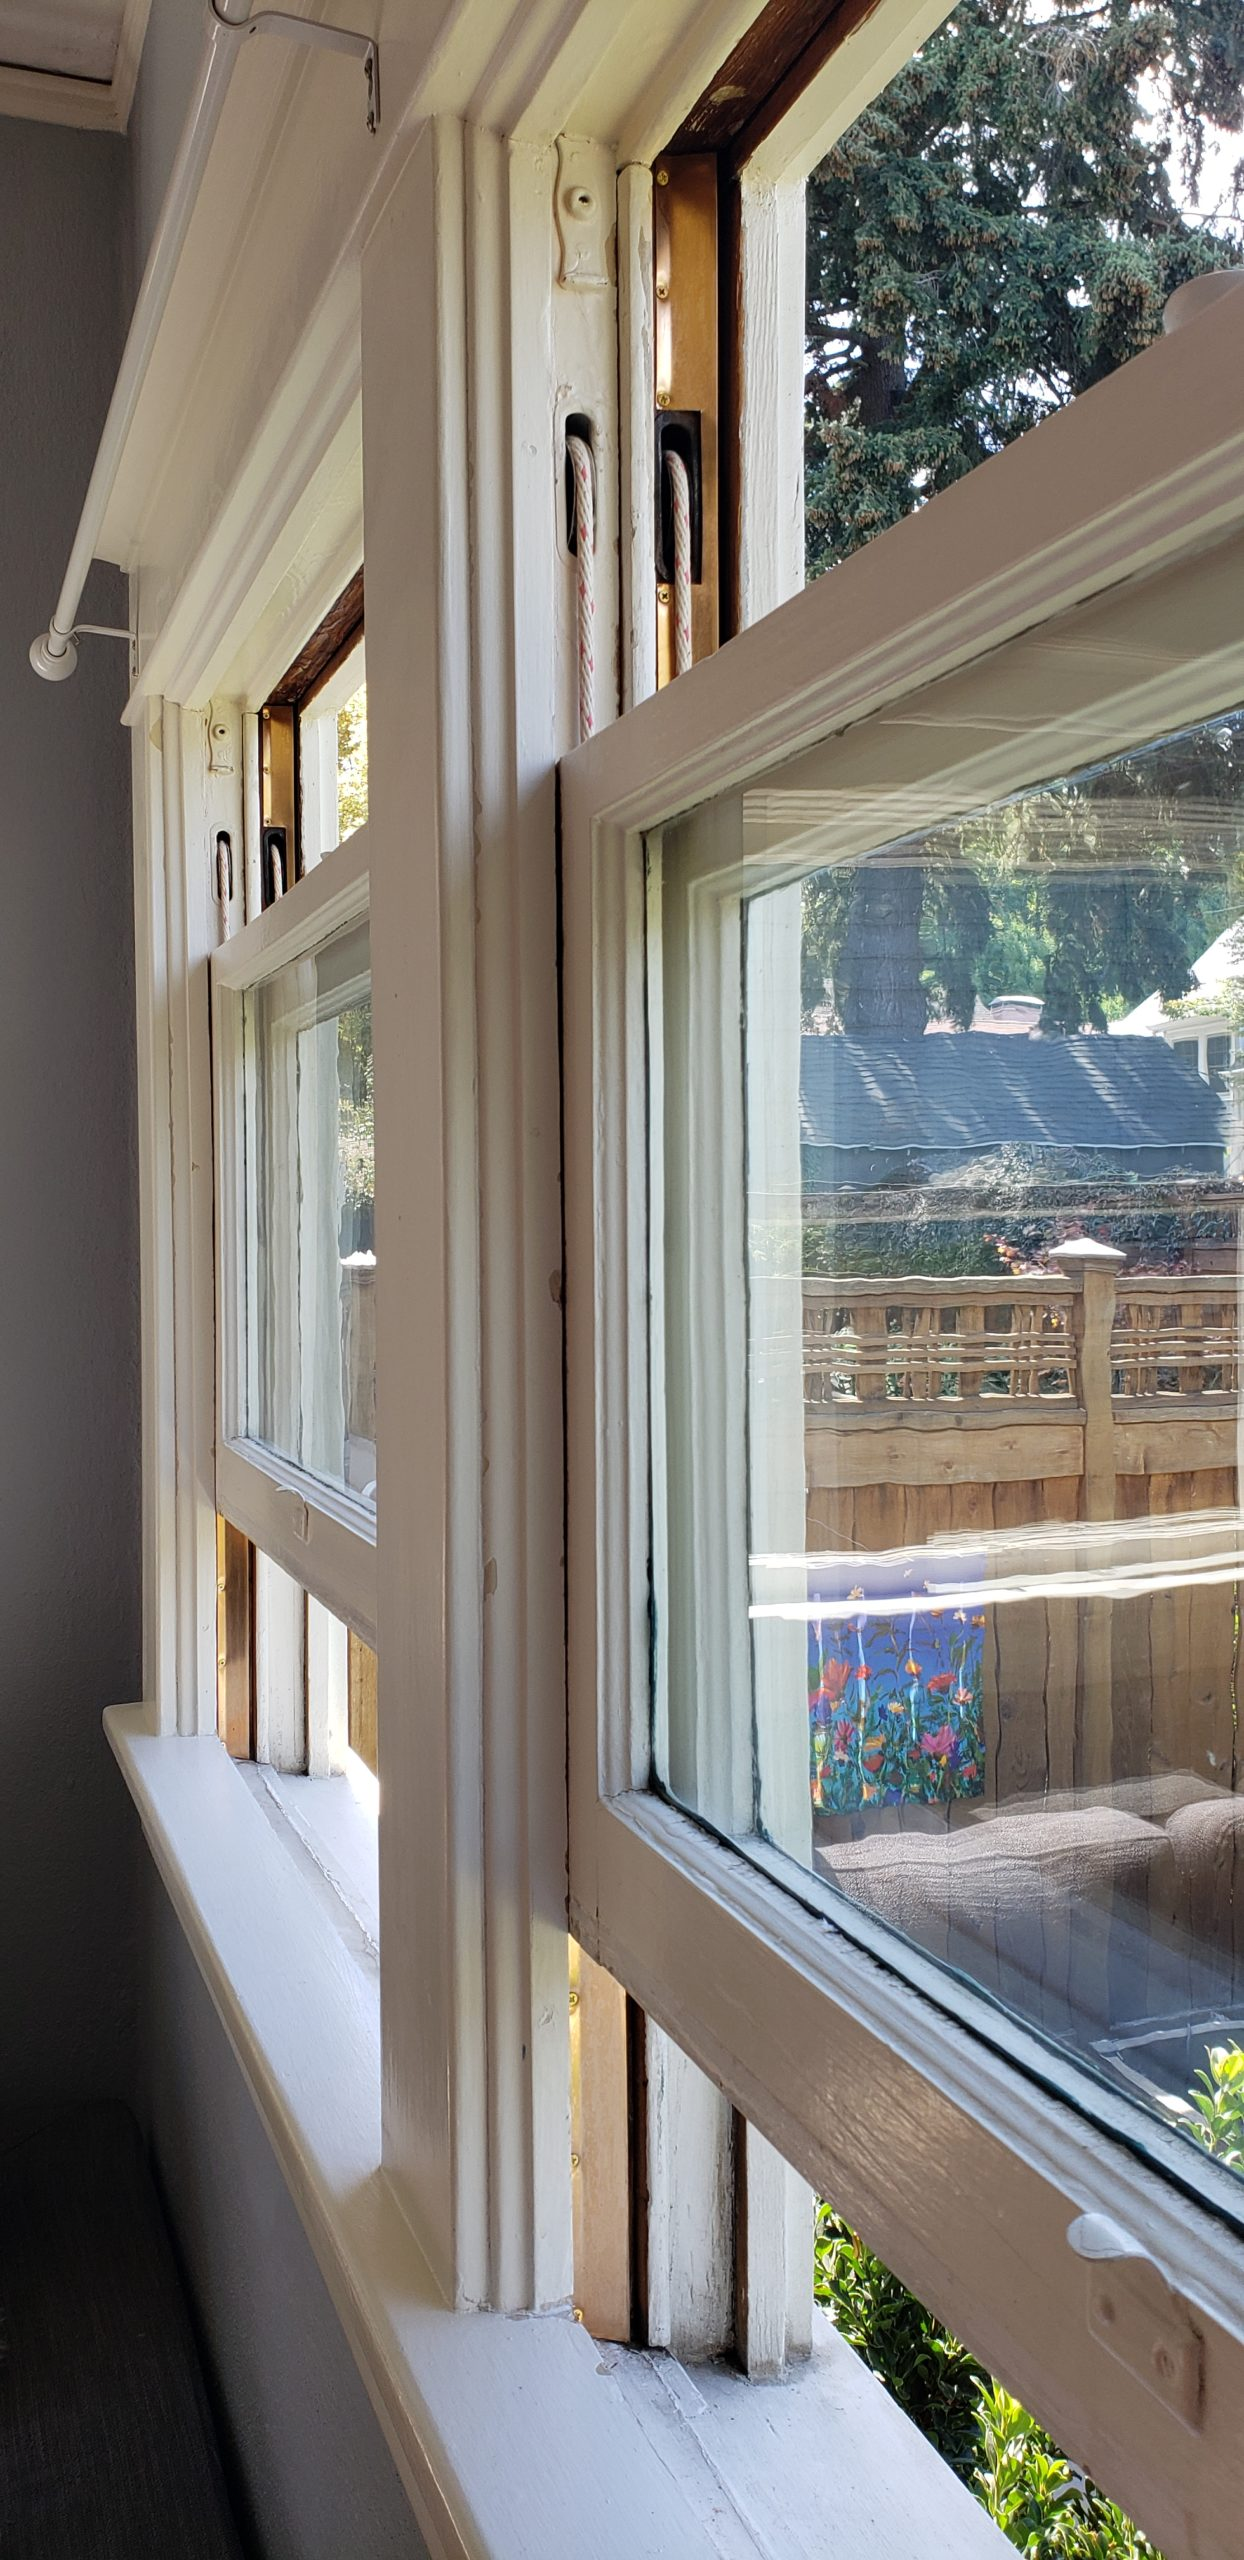 We can add spring bronze weather stripping to your windows to reduce airflow around the sash.